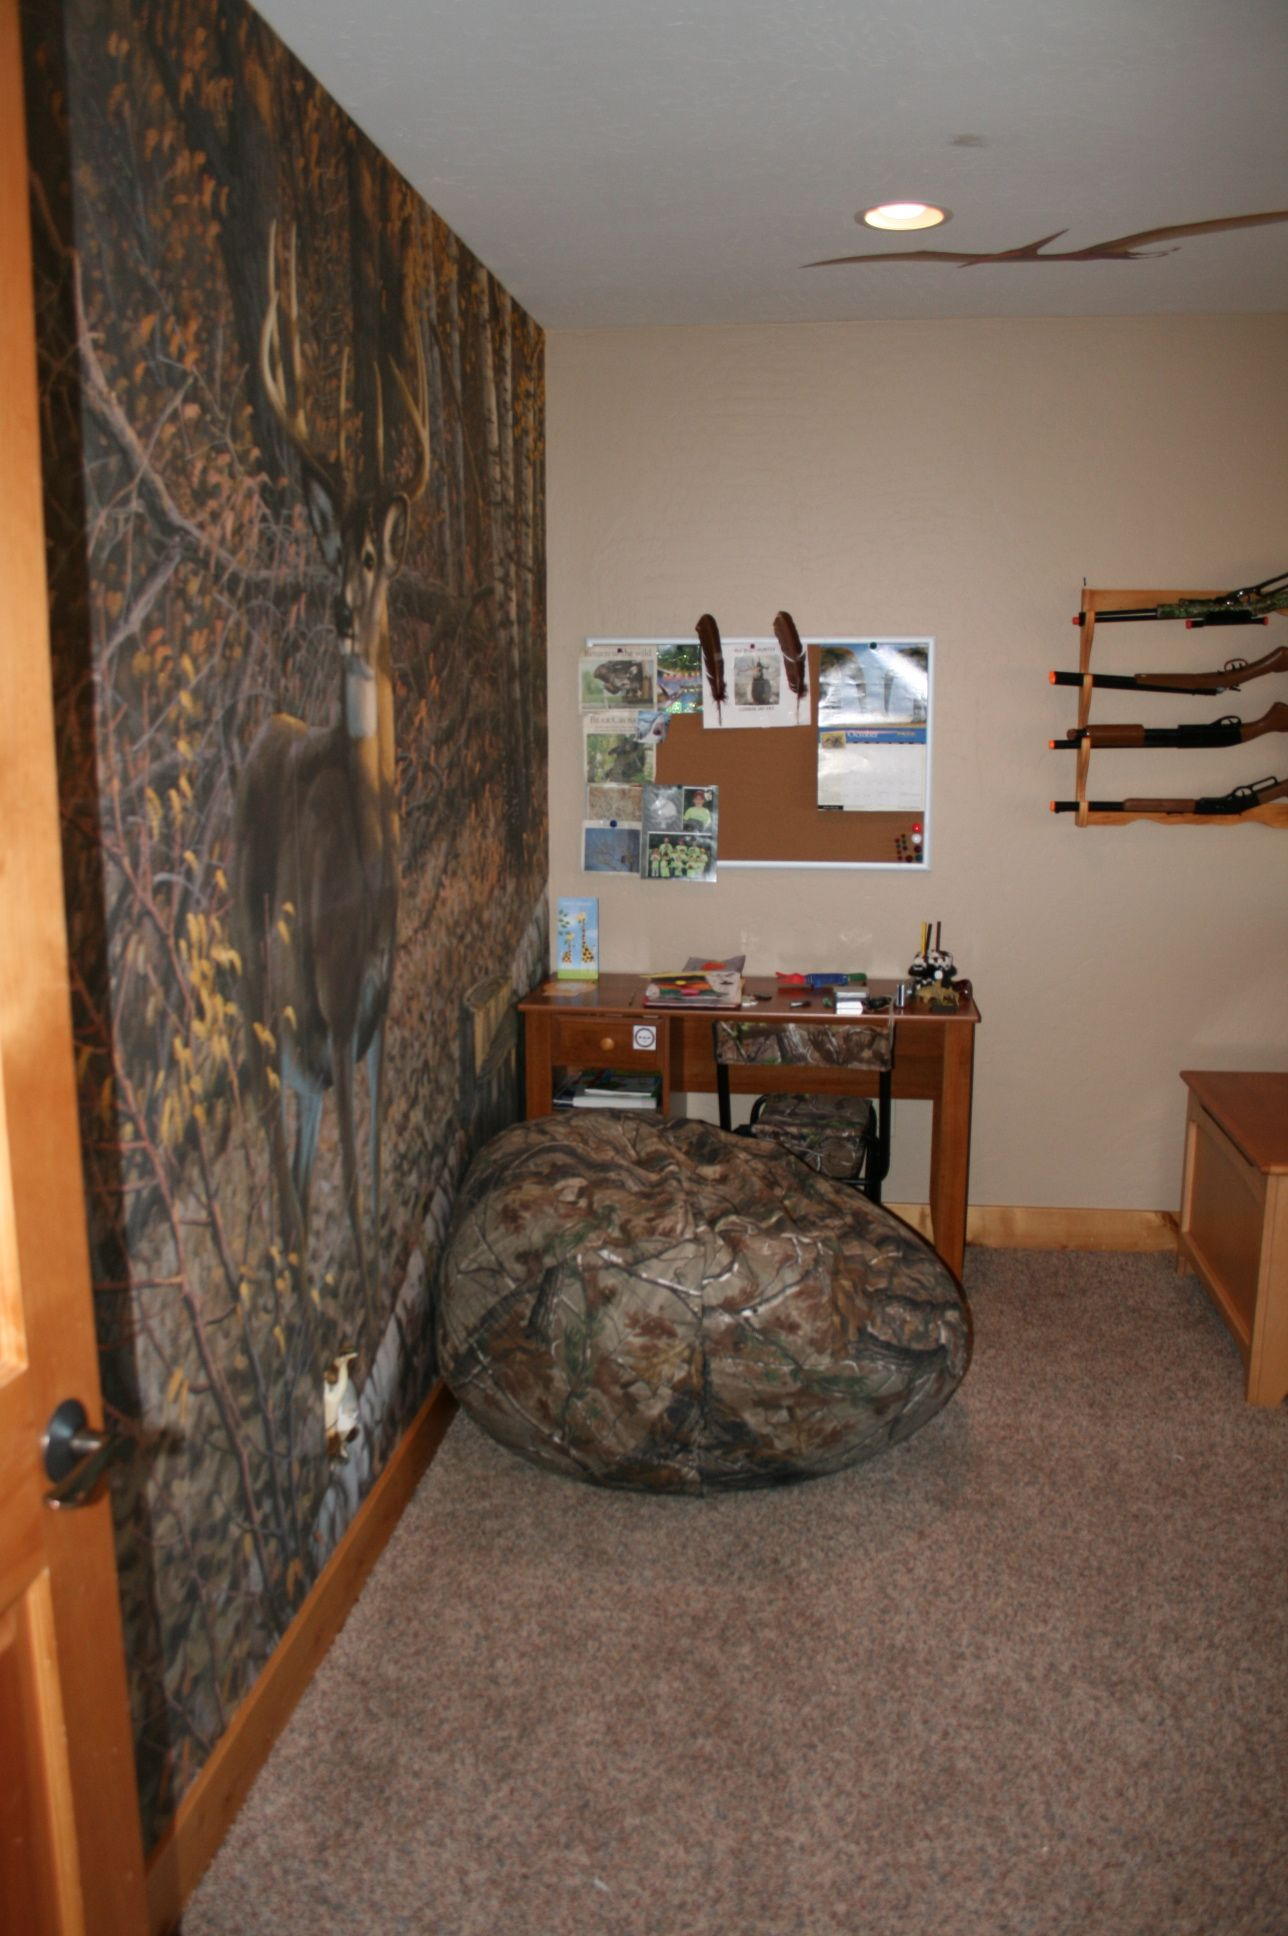 Apartment Decor Themes My Son 39s New Hunting Themed Room Creative Rooms